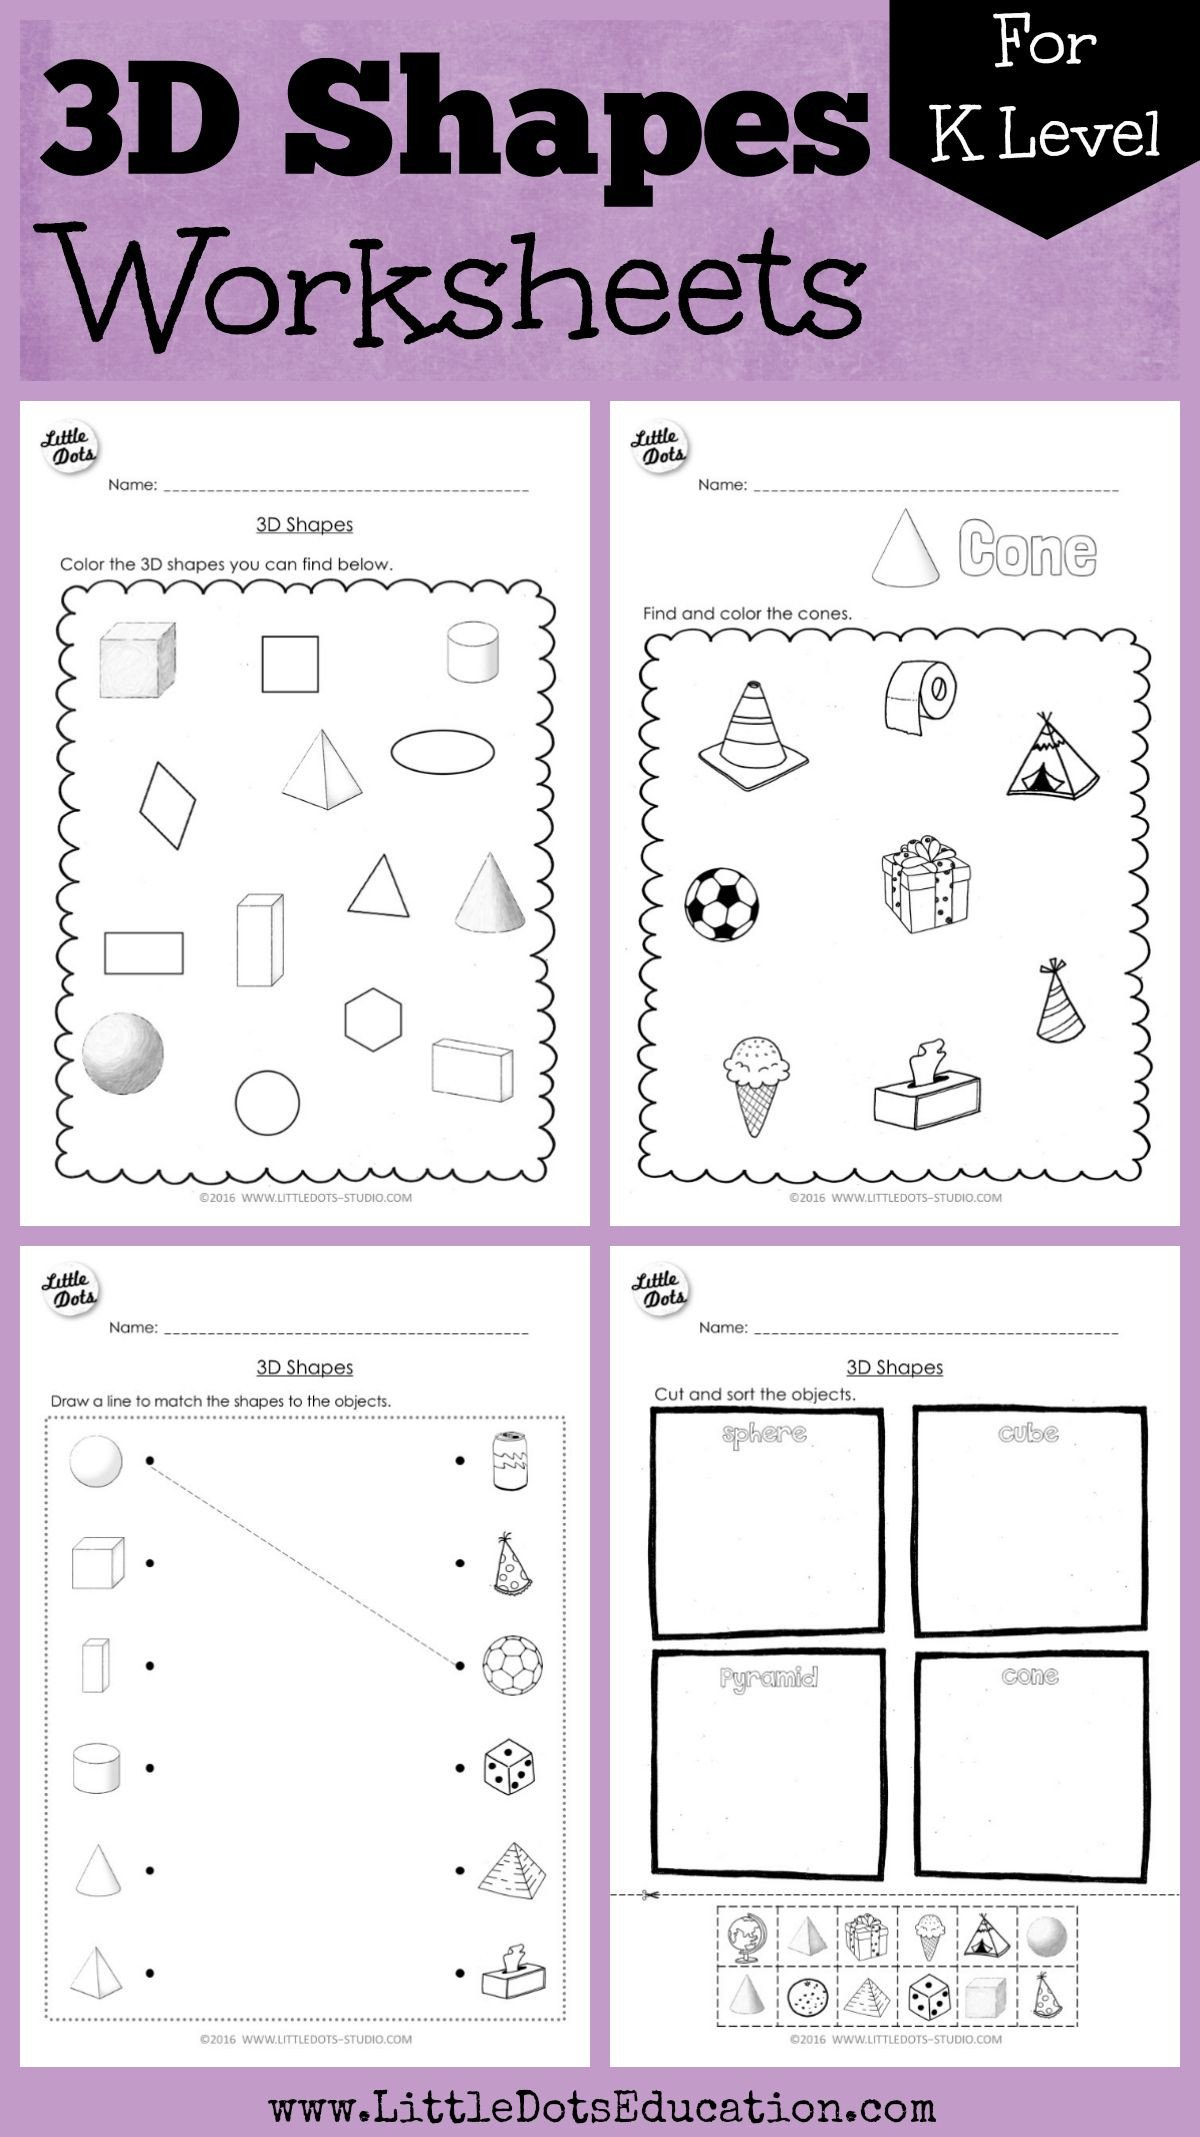 3d Shapes Worksheets 2nd Grade Download 3d solid Shapes Worksheets and Activities